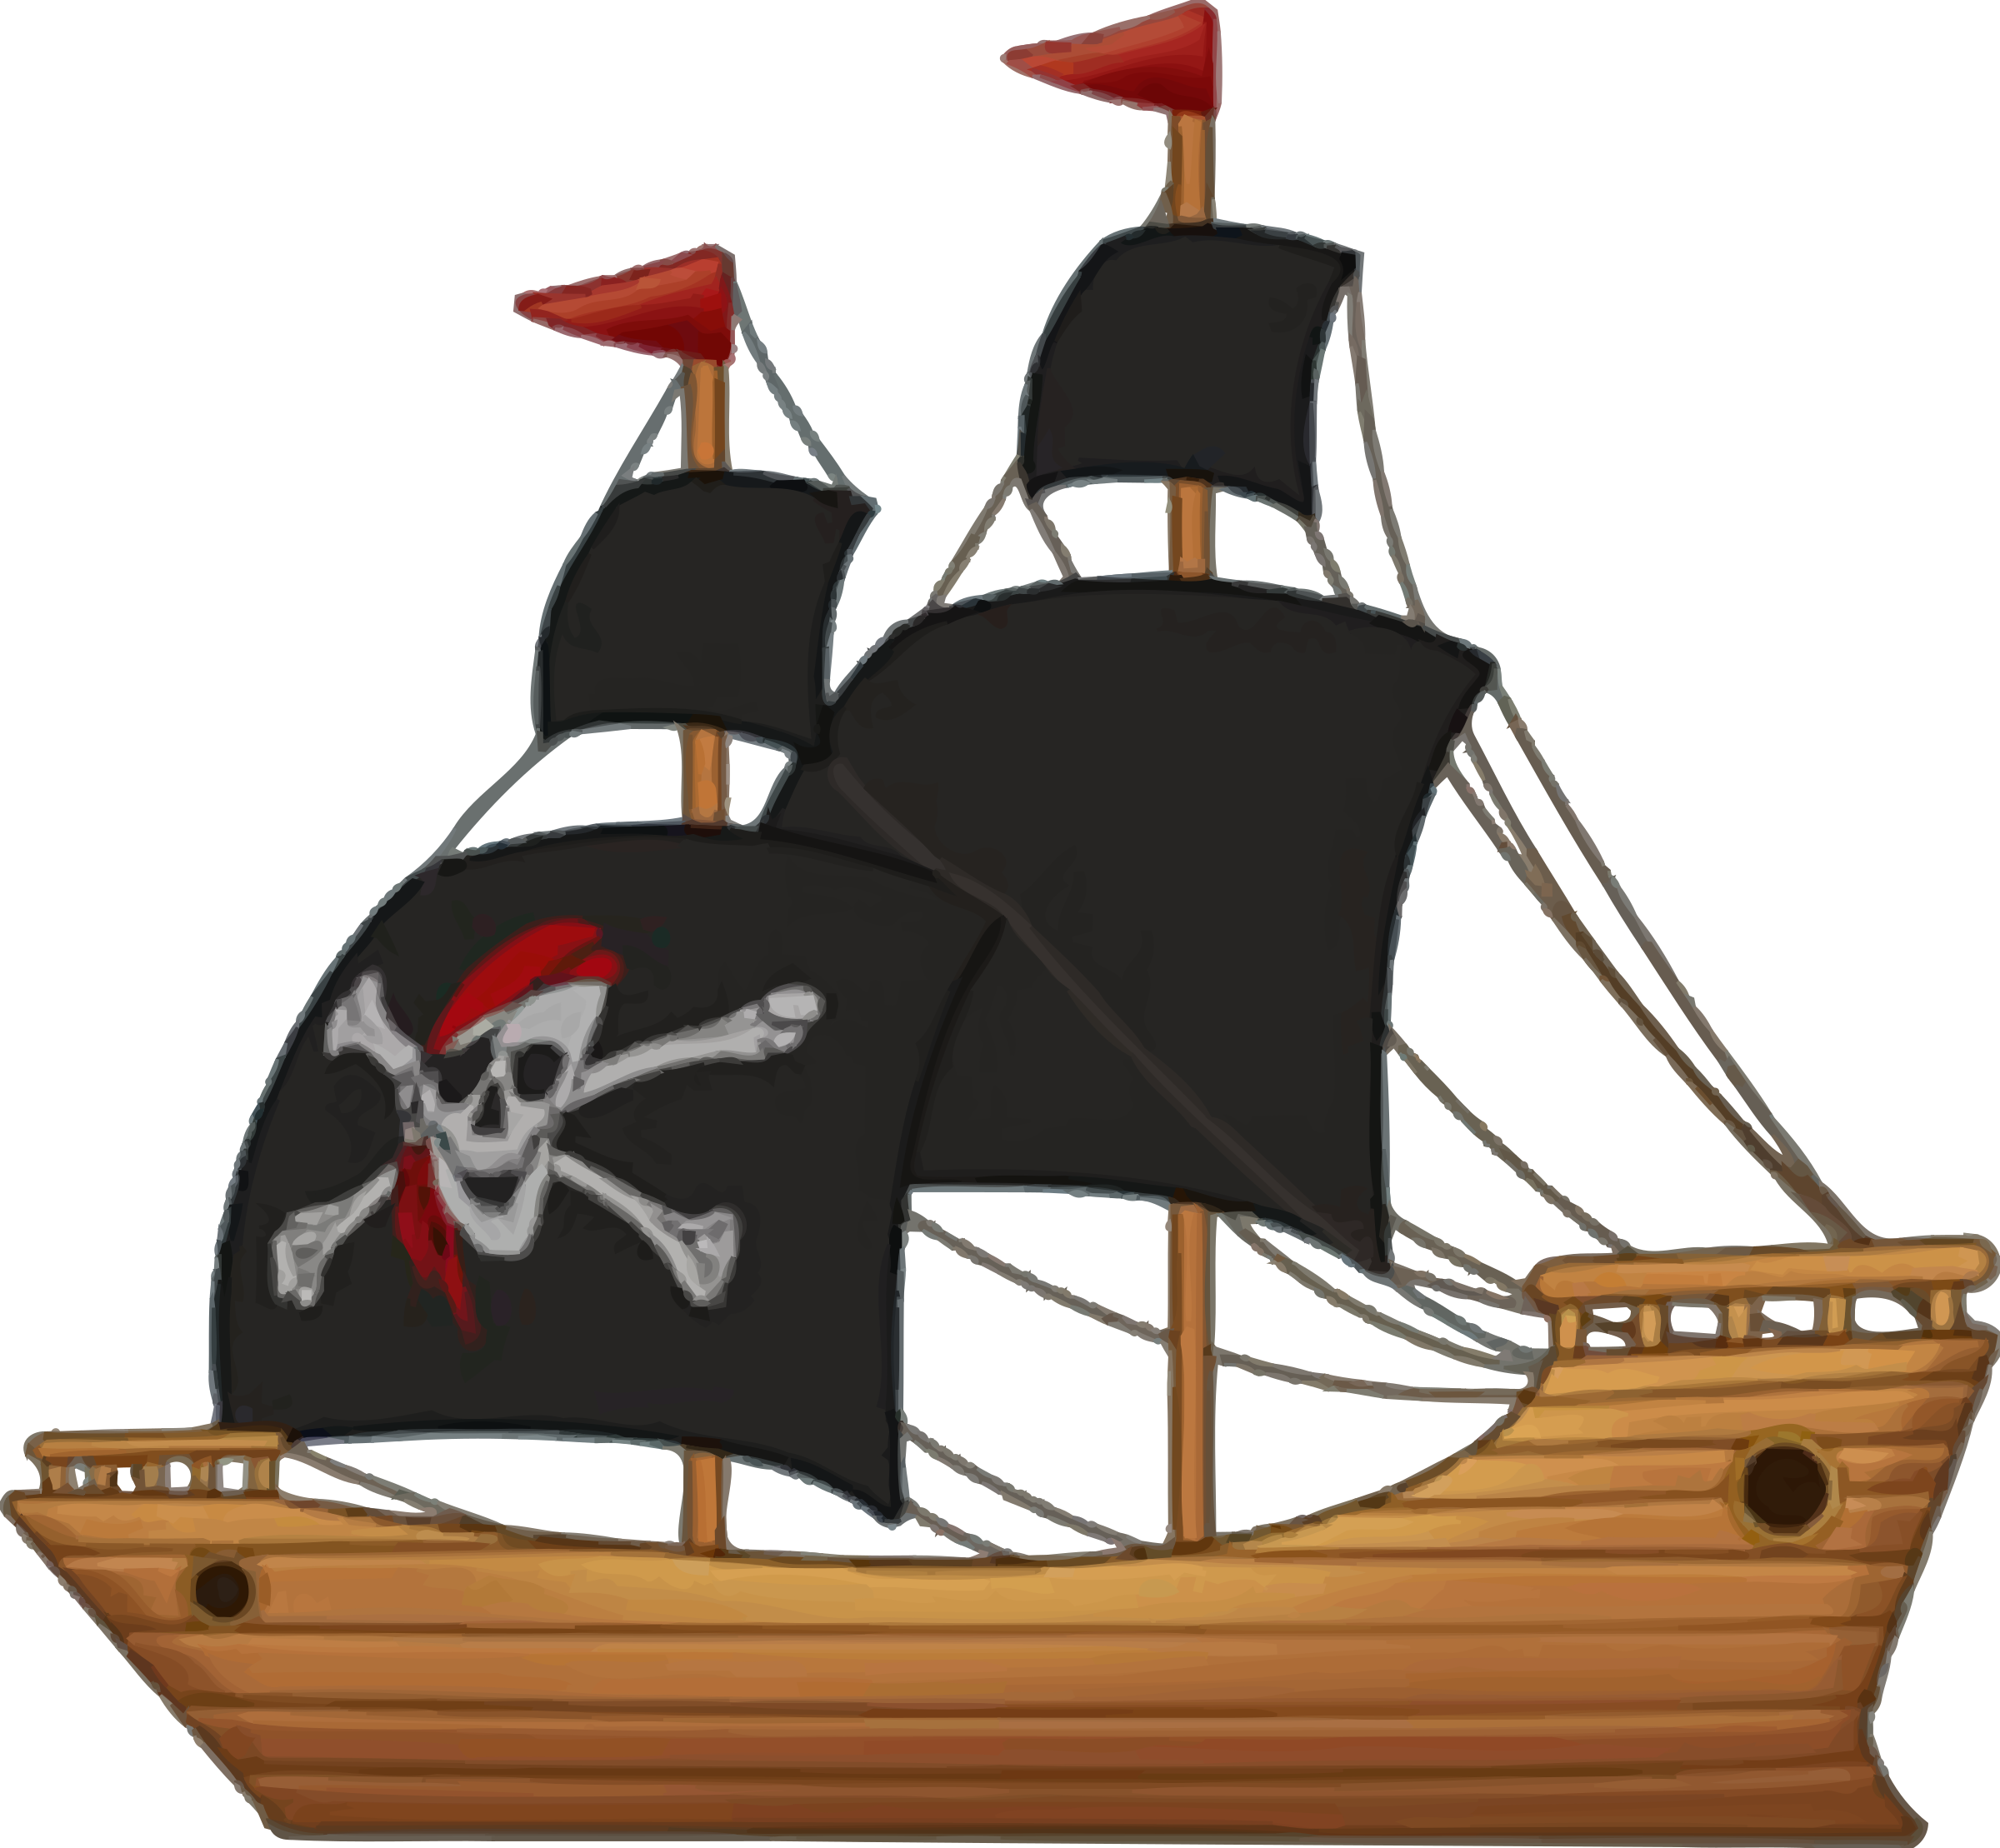 Old ship sun clipart clip art freeuse download Pirate ship by @Firkin, From an image on OpenGameArt.org., on ... clip art freeuse download